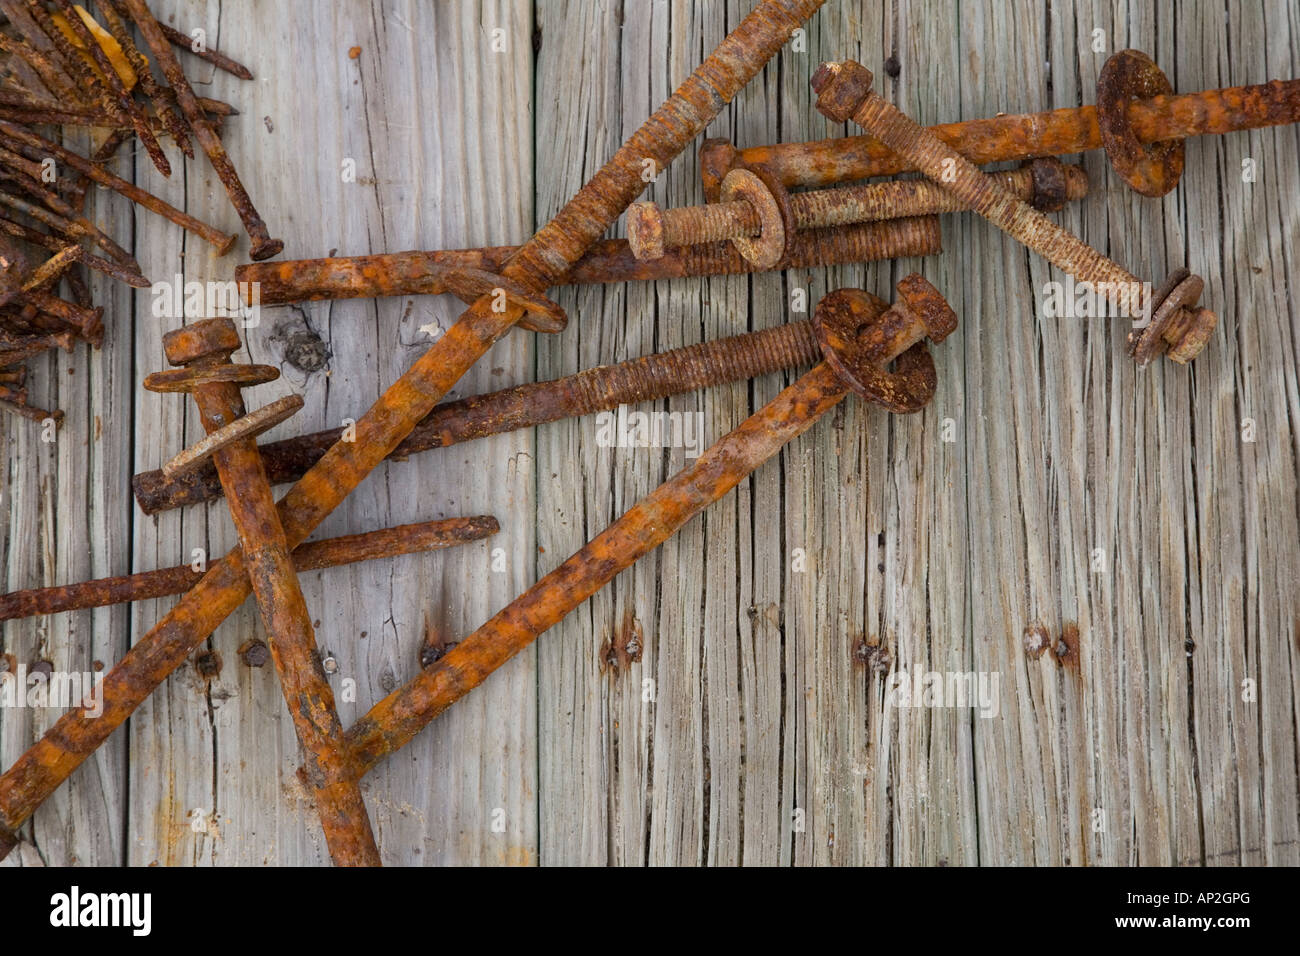 Rusty nails laying on weathered wood - Stock Image